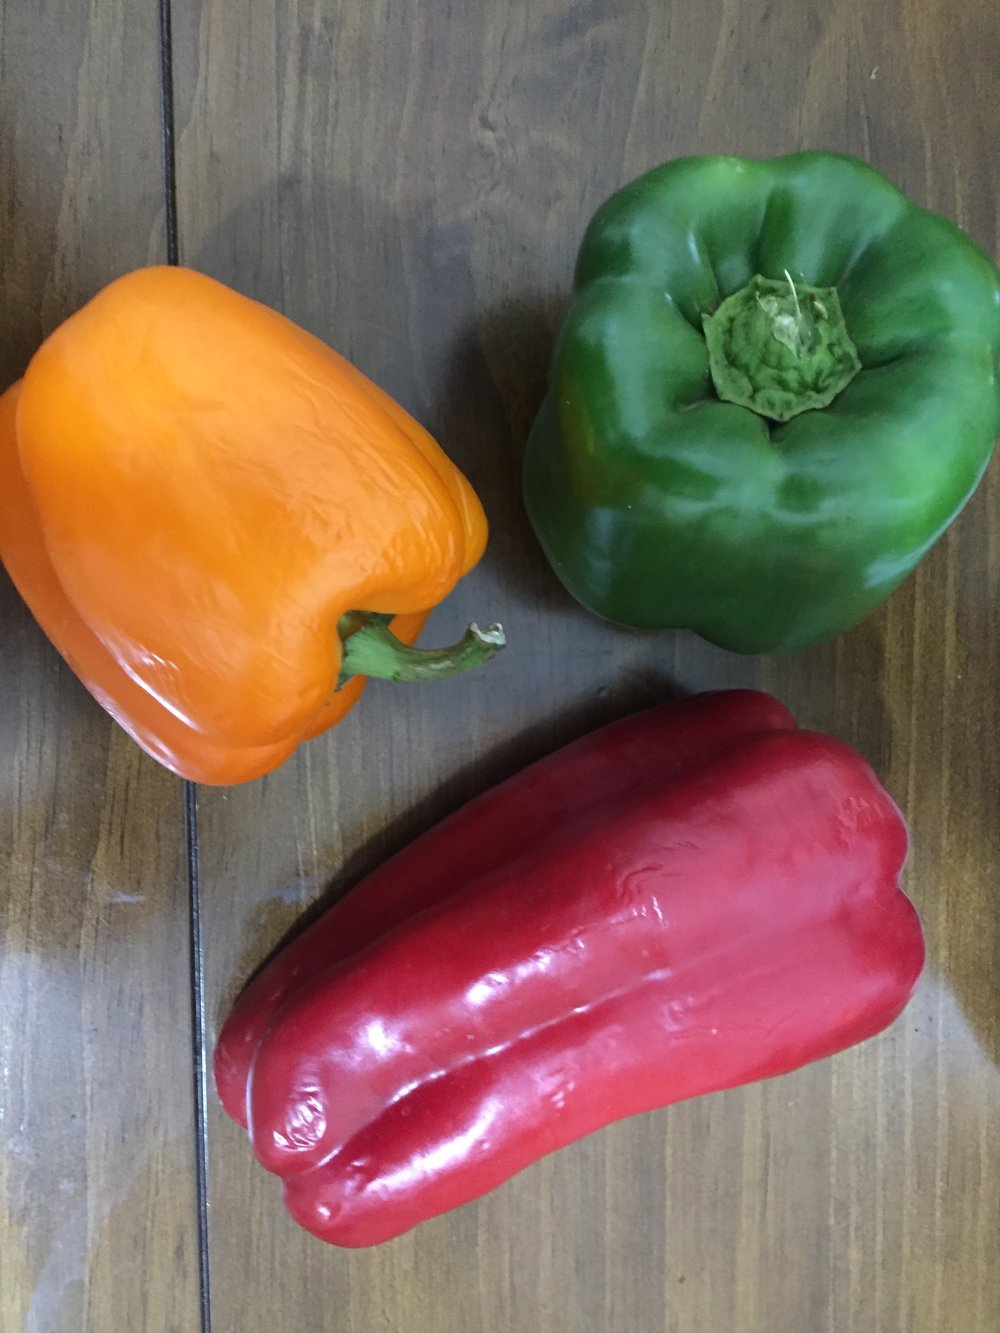 Take the Peppers, core them and remove the seeds. Cut them lengthwise and put in a bowl.